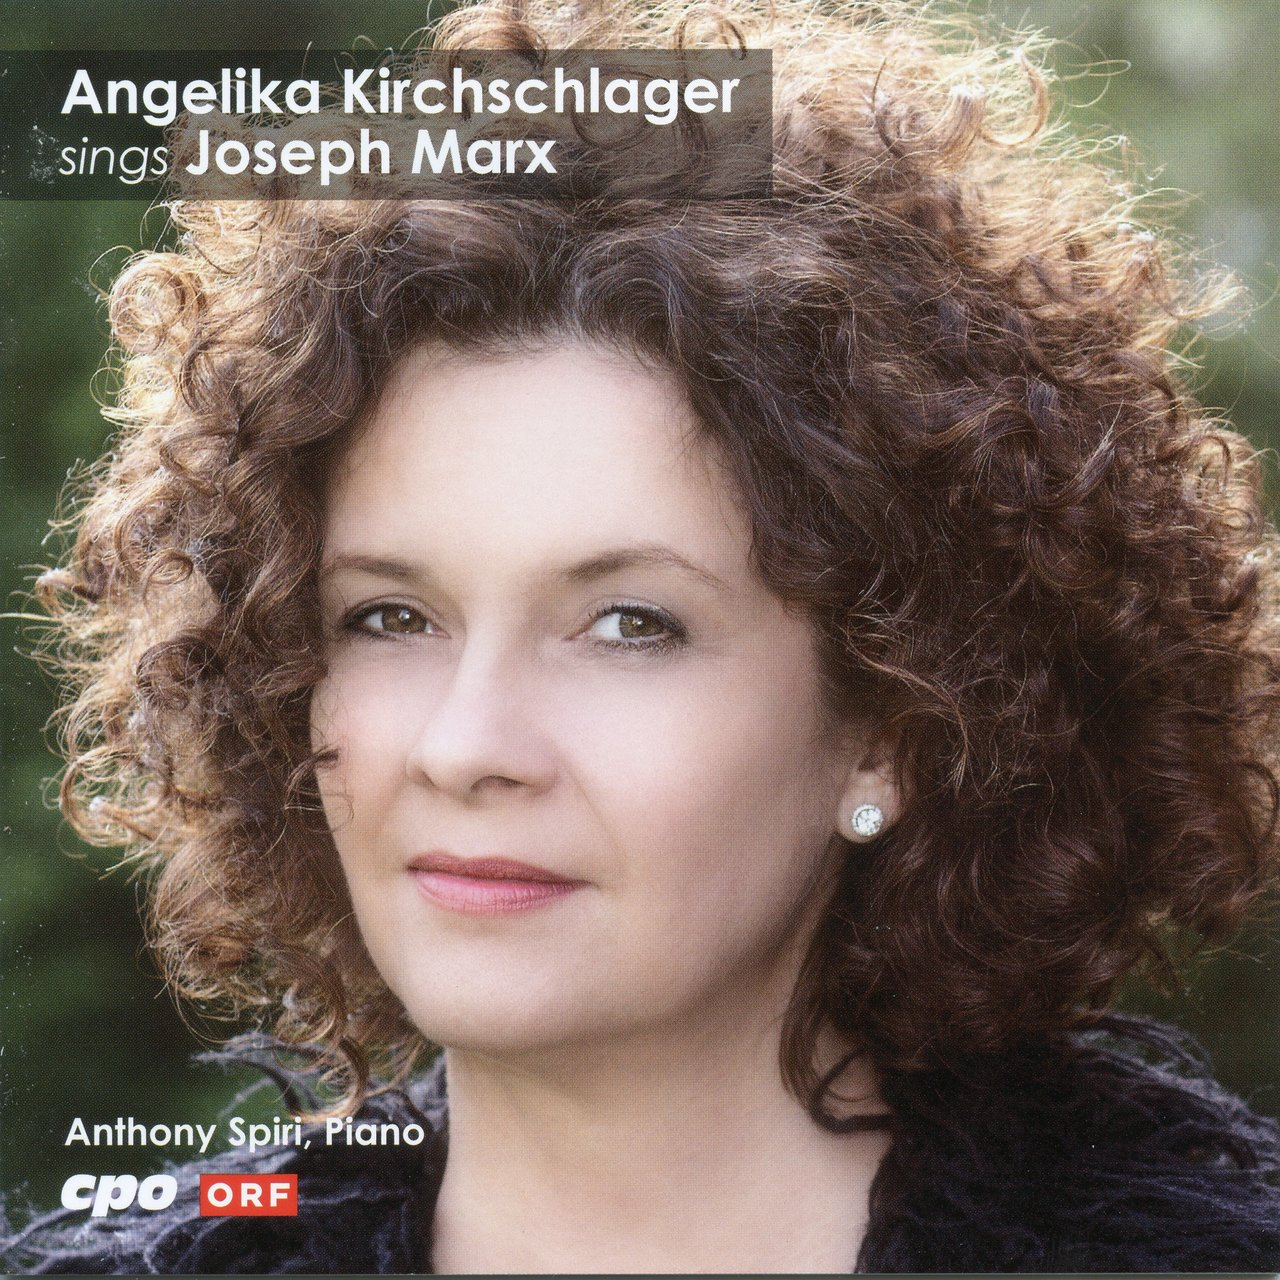 TIDAL: Listen to Angelika Kirchschlager Sings Christmas Carols on TIDAL